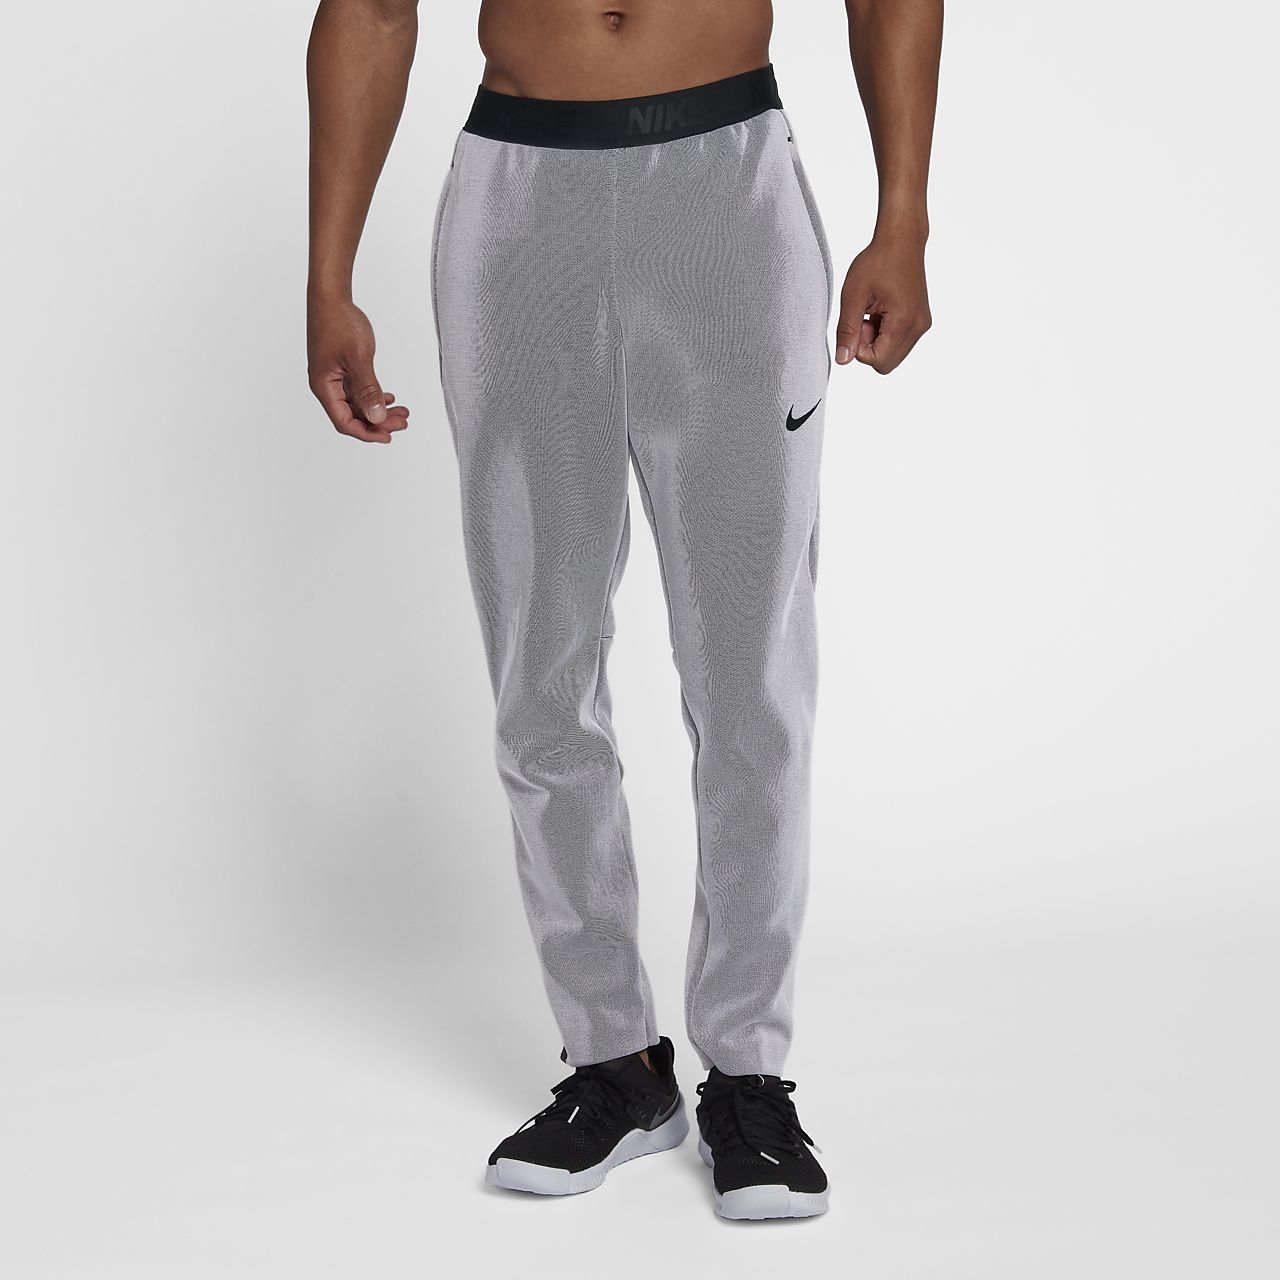 Pantalon de training Nike Therma Sphere Max pour Homme